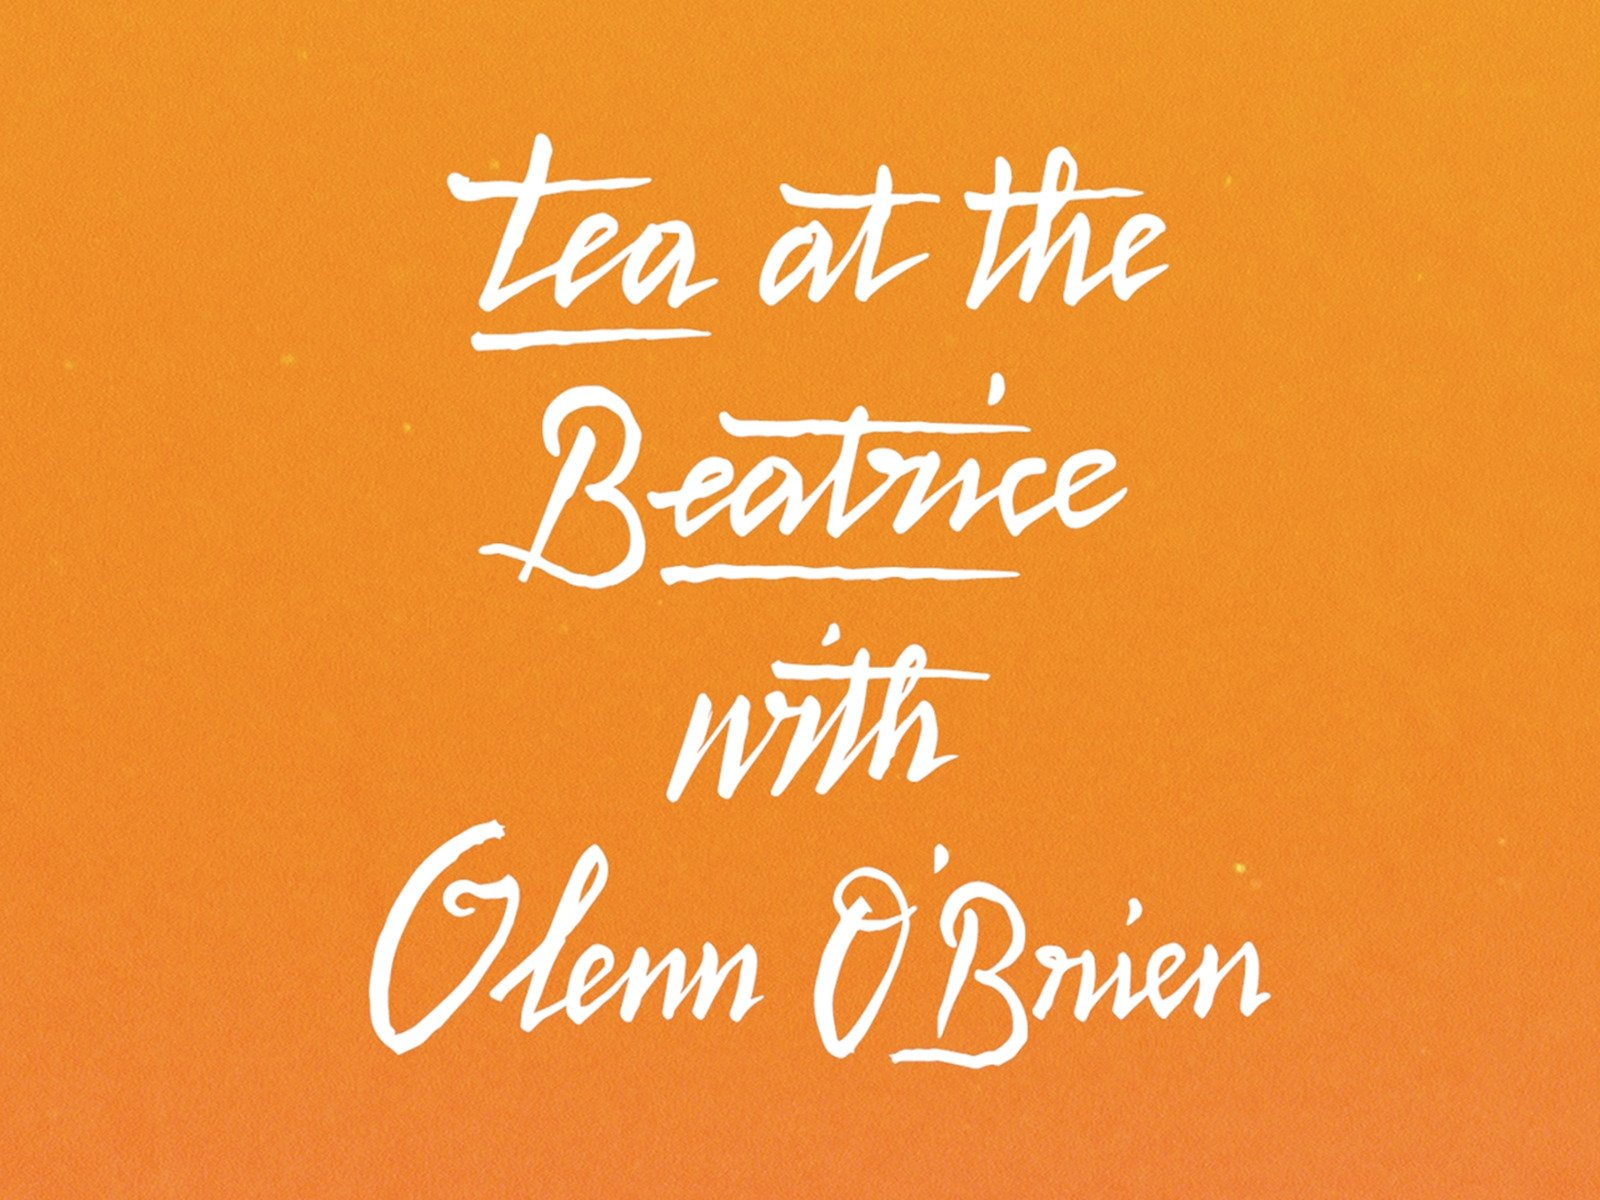 Tea At The Beatrice with Glenn O'Brien